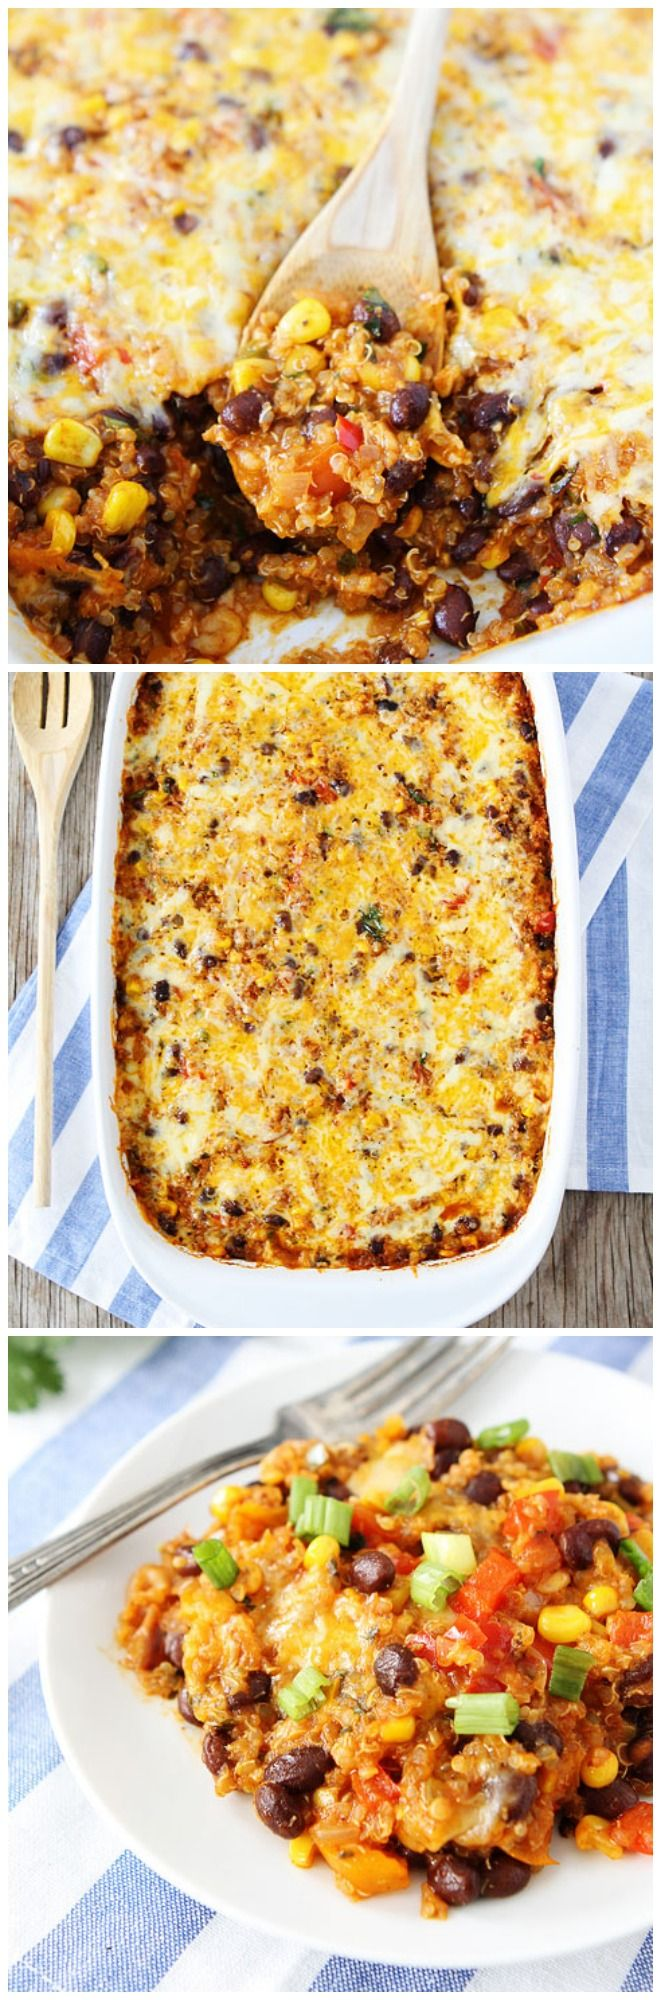 Black Bean and Quinoa Enchilada Bake Recipe on twopeasandtheirpod.com My new favorite meal! You HAVE to try this recipe!